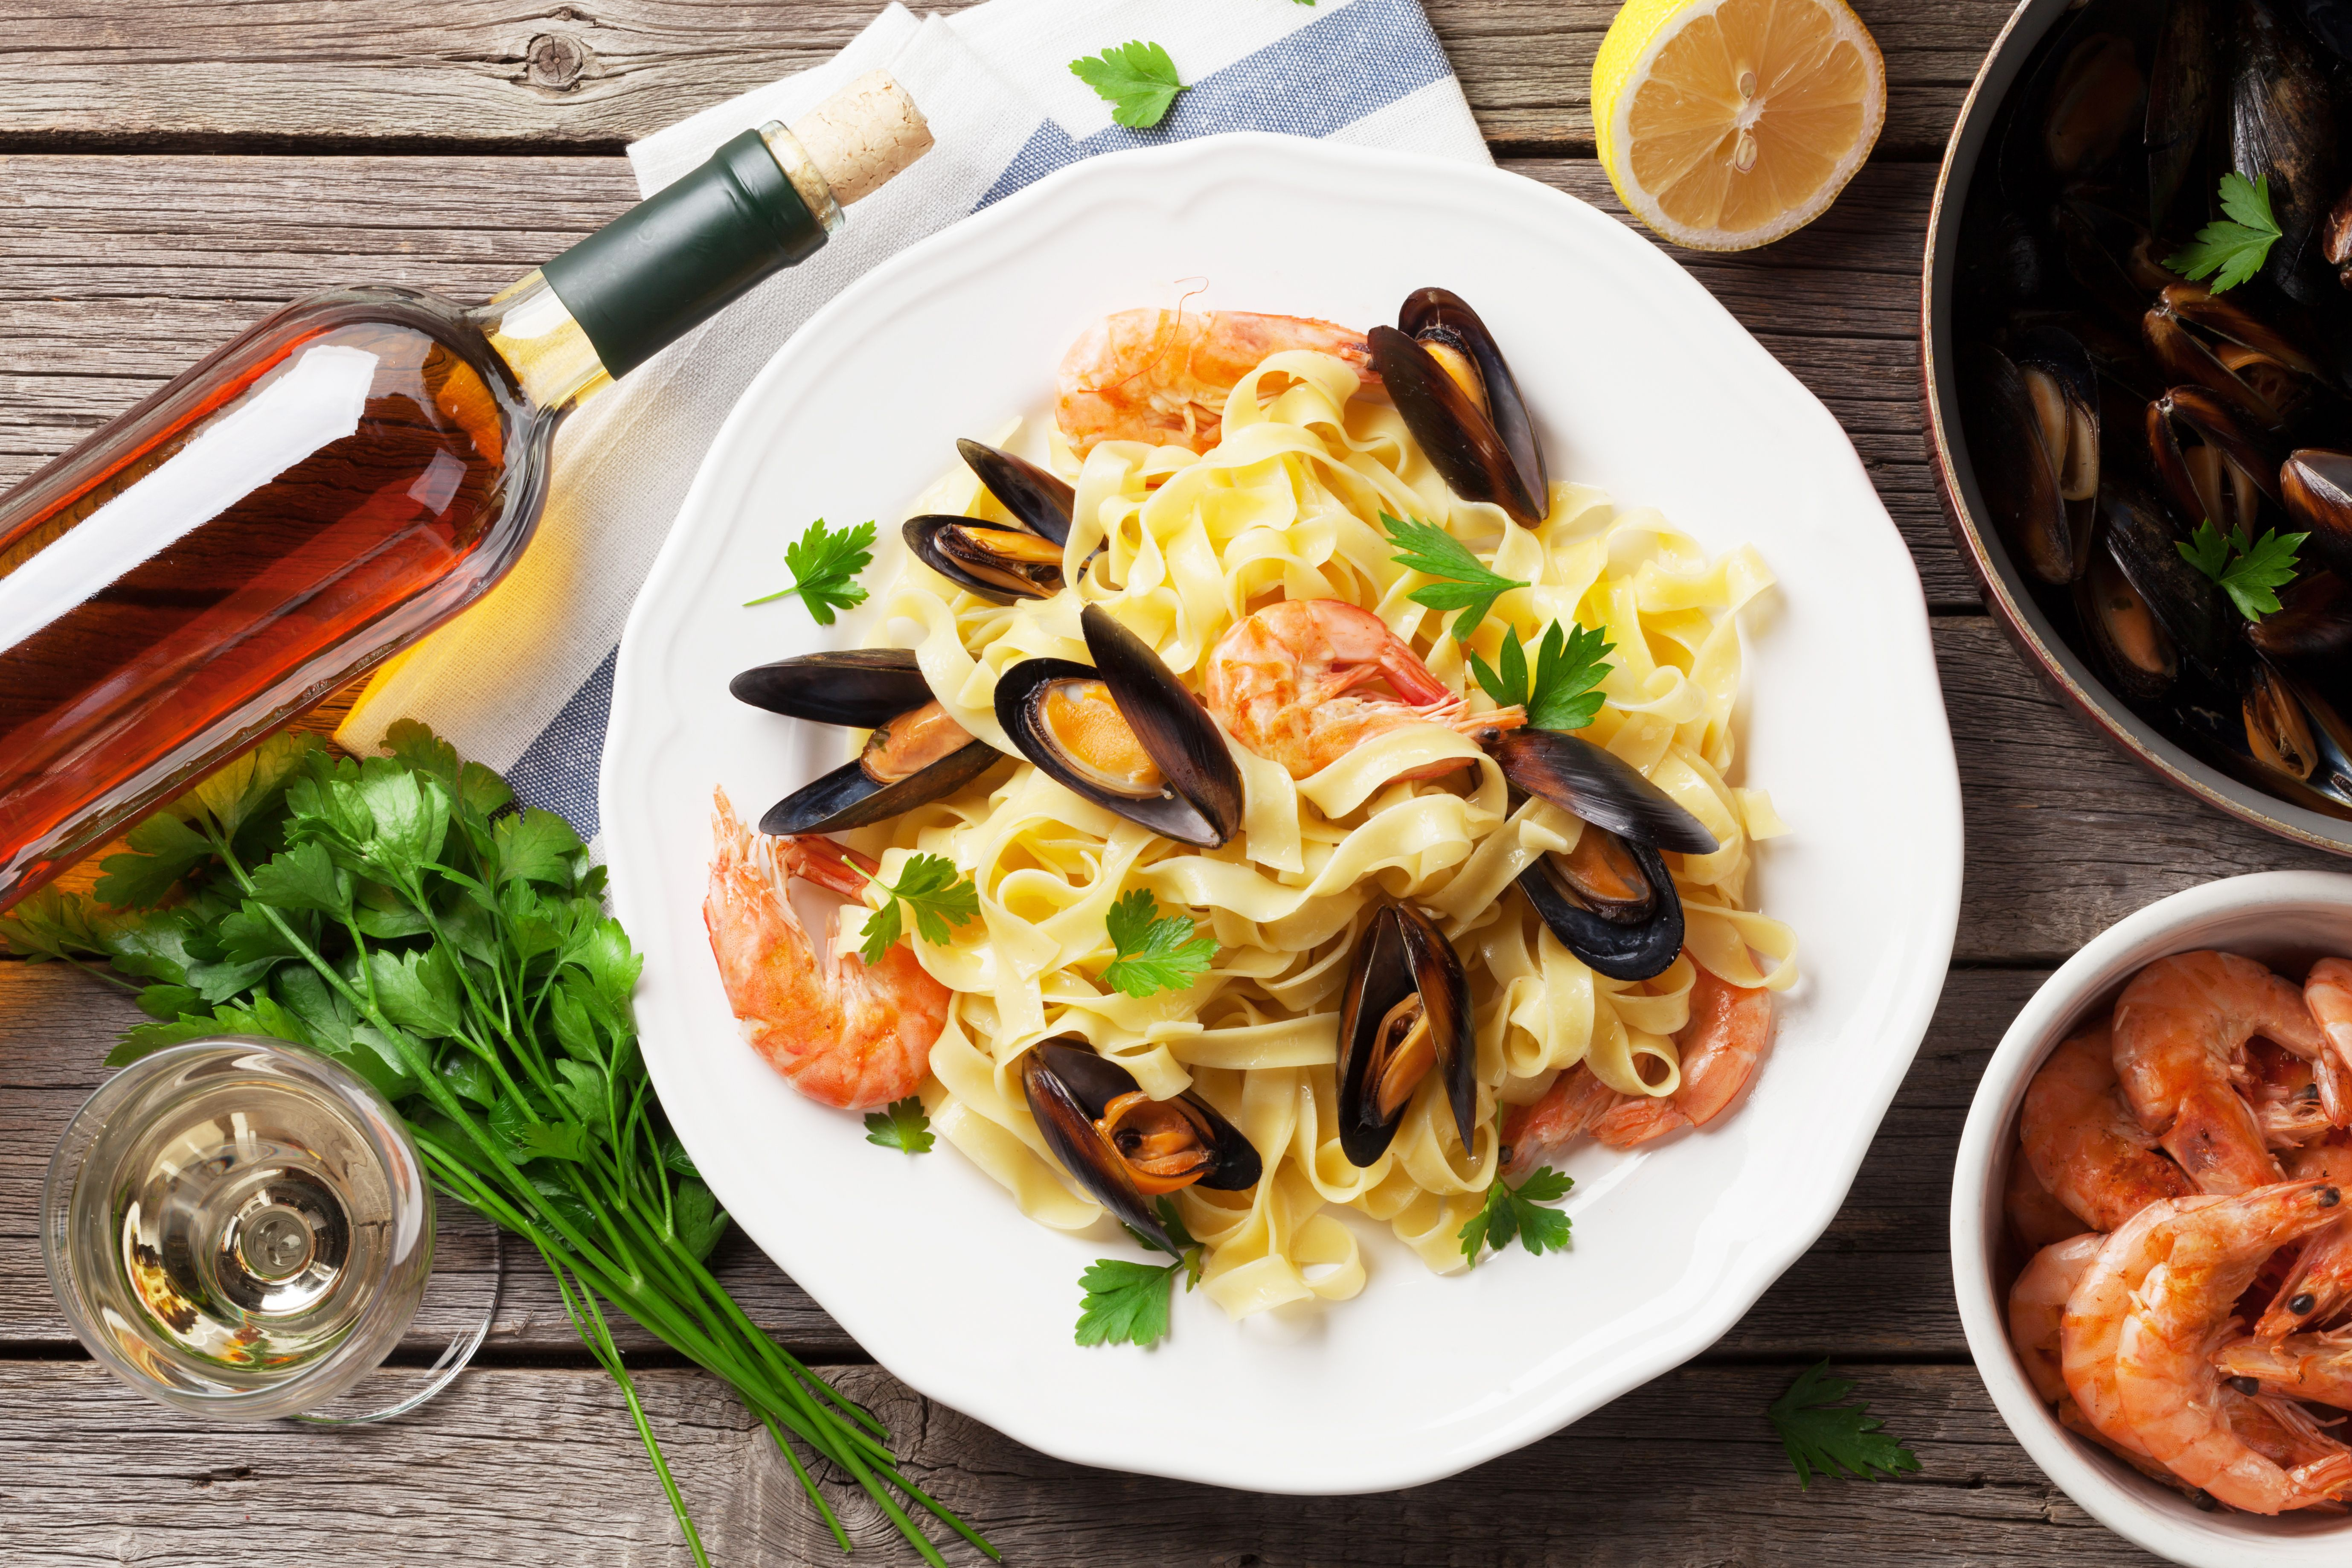 An assortment of seafood with a bottle of wine. │ Source: Shutterstock